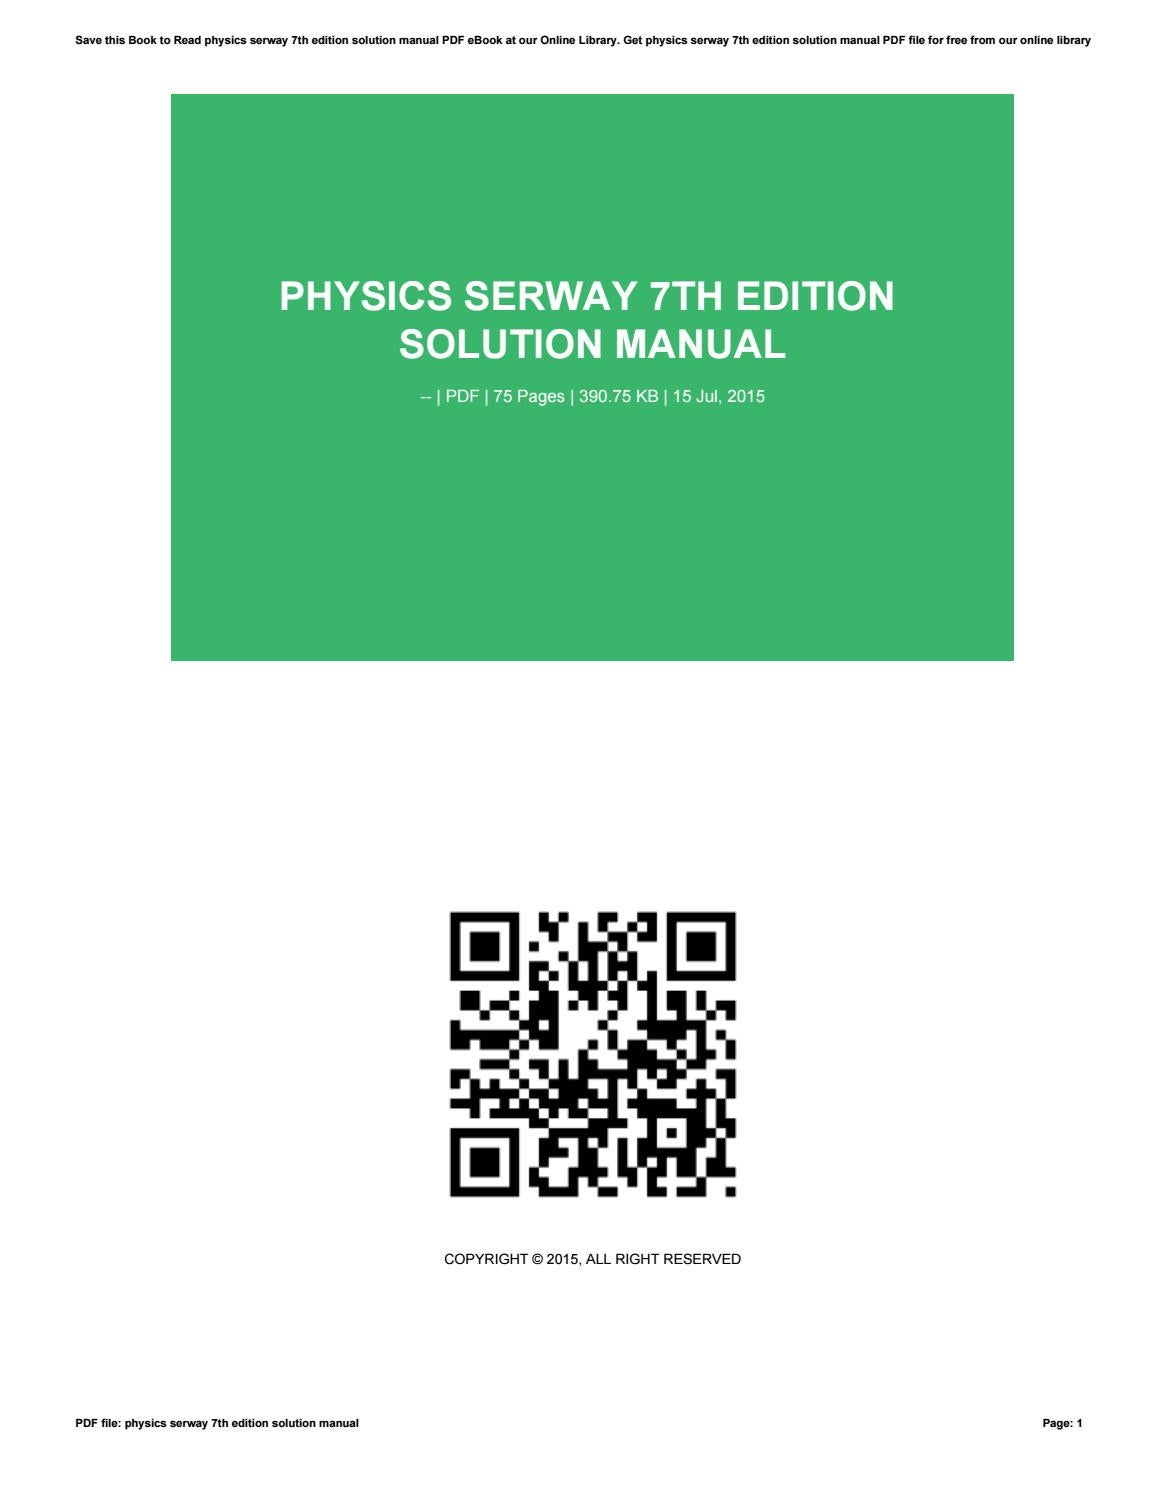 College physics serway 7th edition solution manual free download.